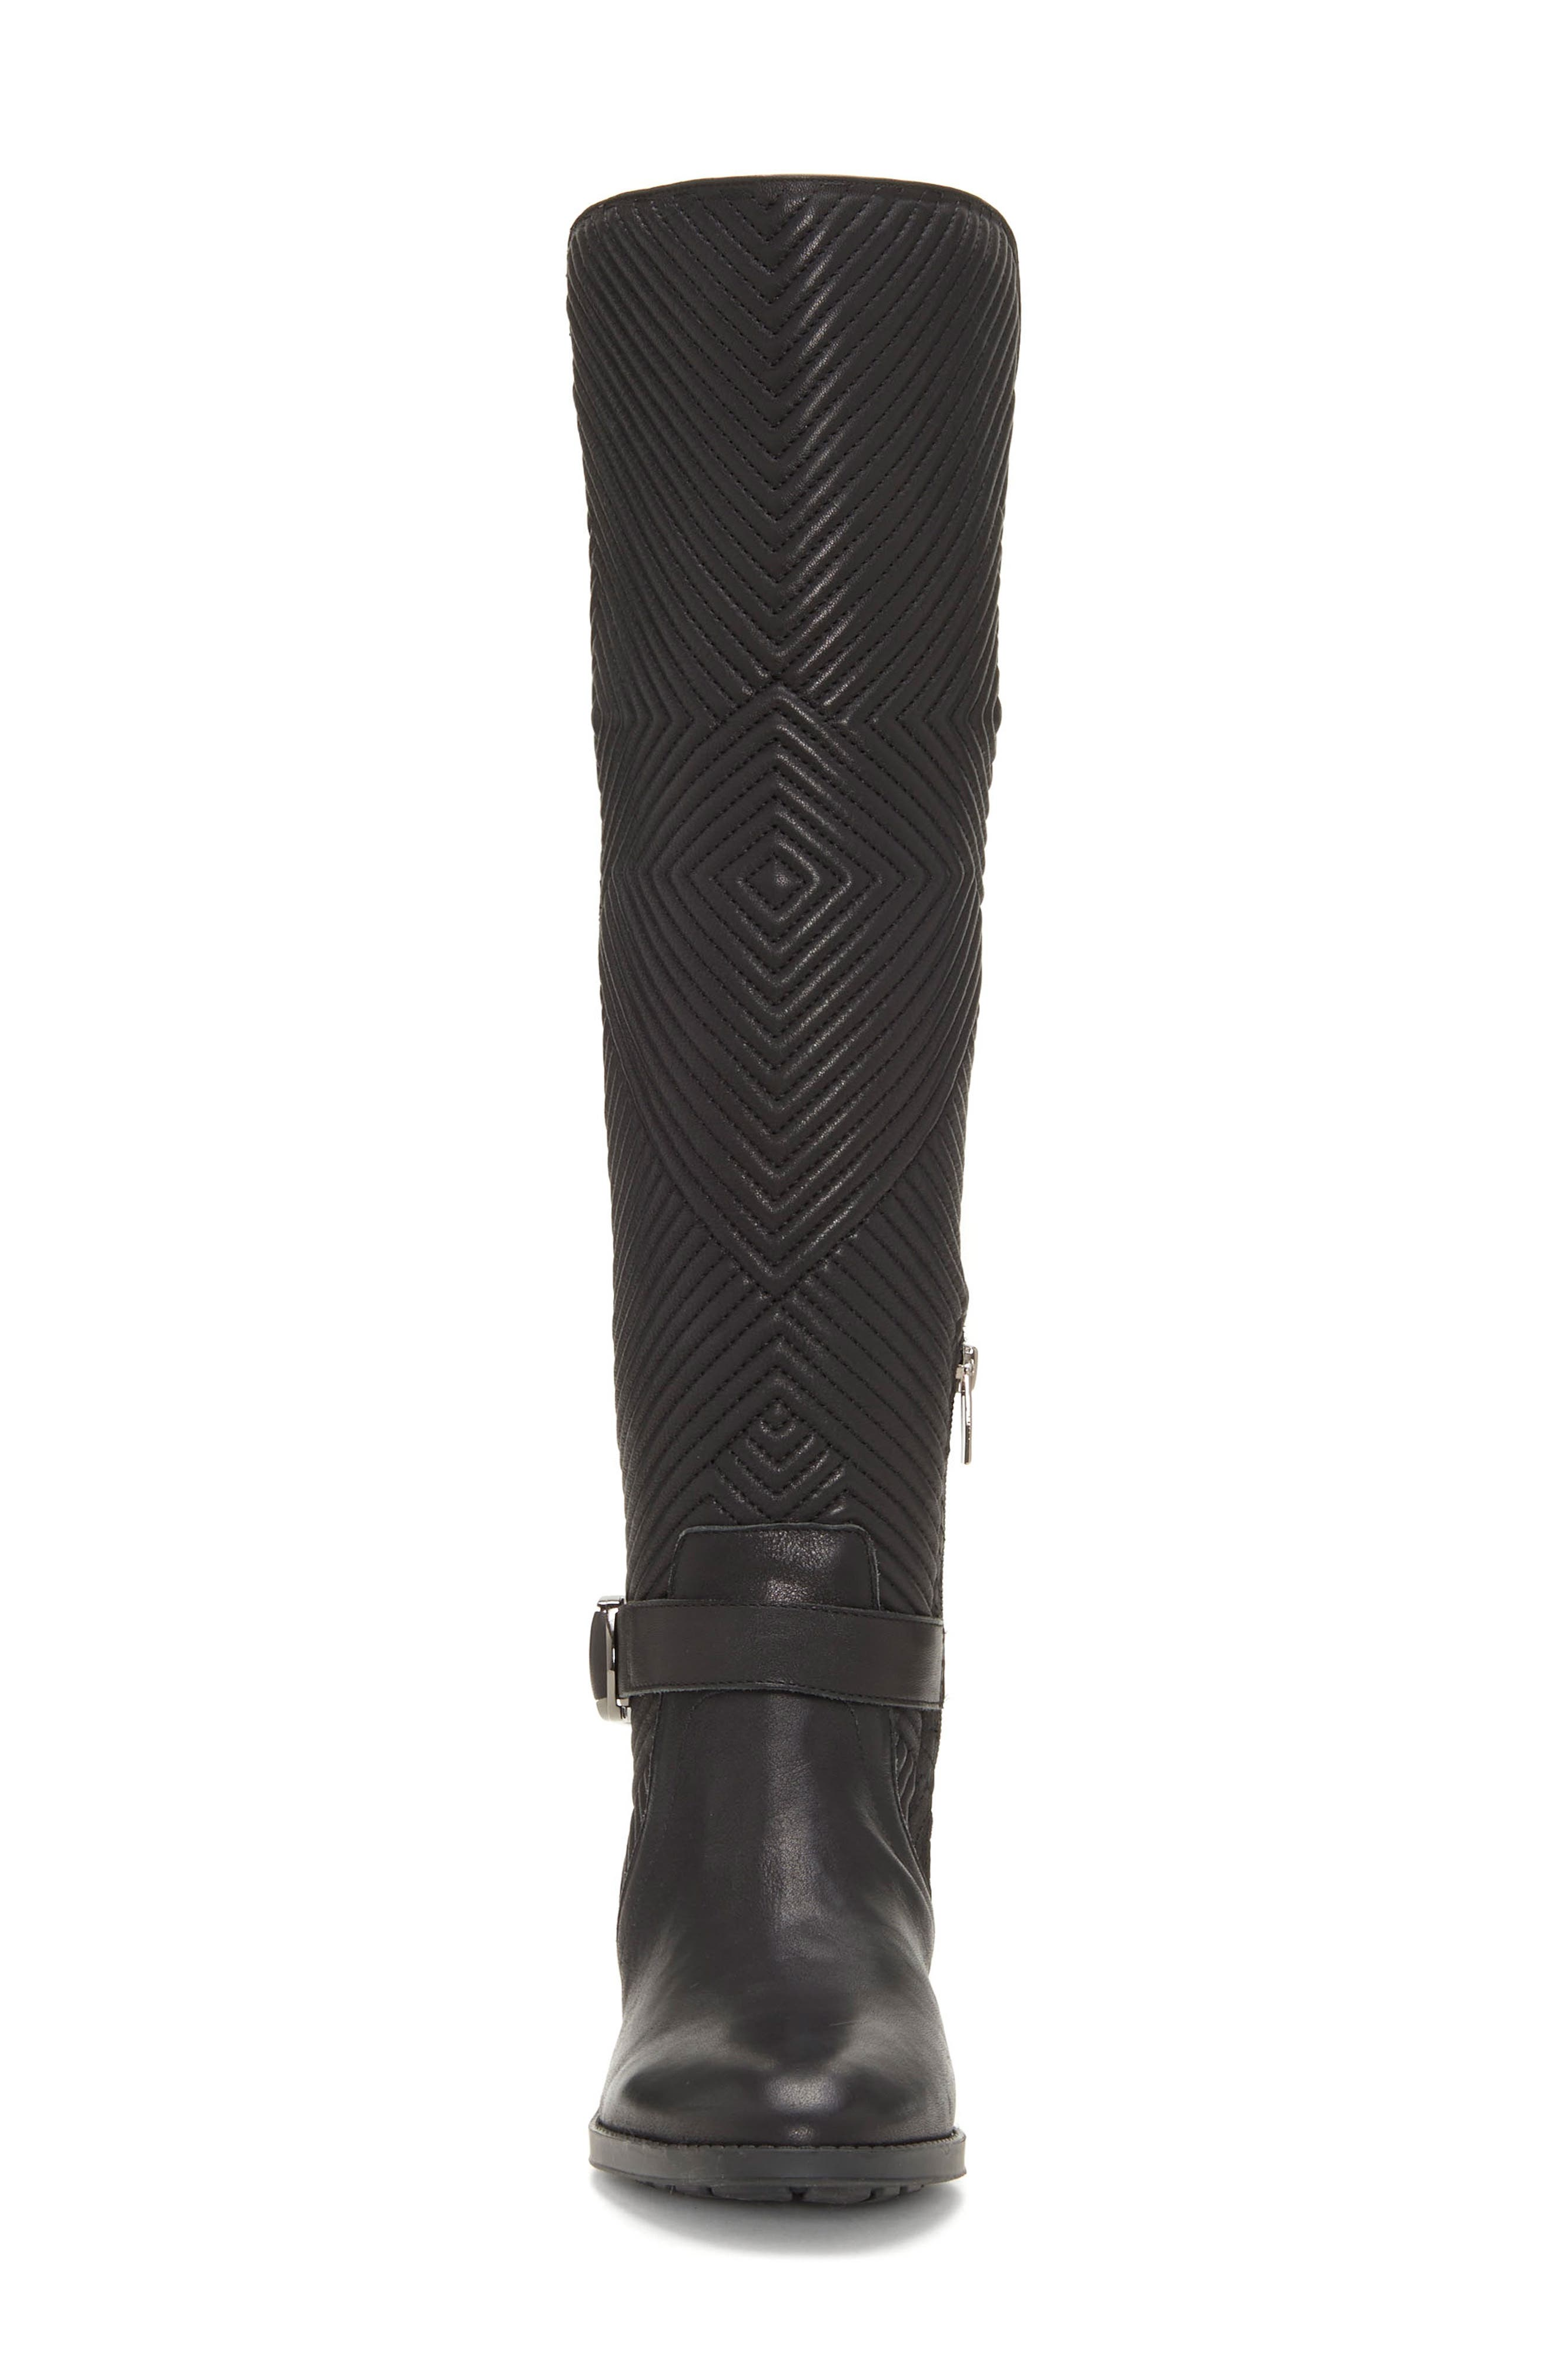 Pordalia Over-the-Knee Boot,                             Alternate thumbnail 4, color,                             BLACK LEATHER